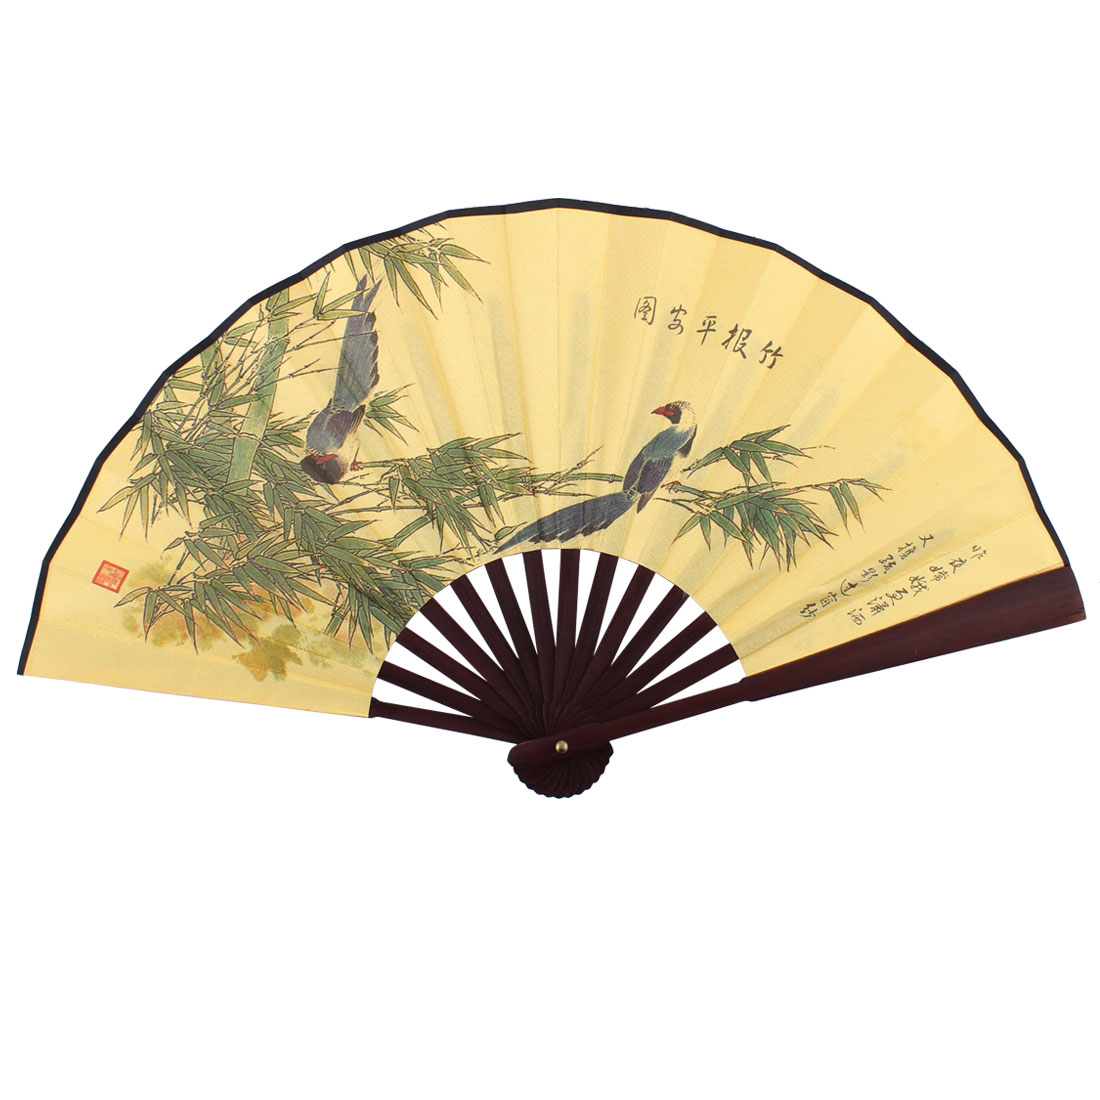 Household Decor Wooden Frame Bamboo Pattern Chinese Retro Style Folding Handheld Fan Yellow